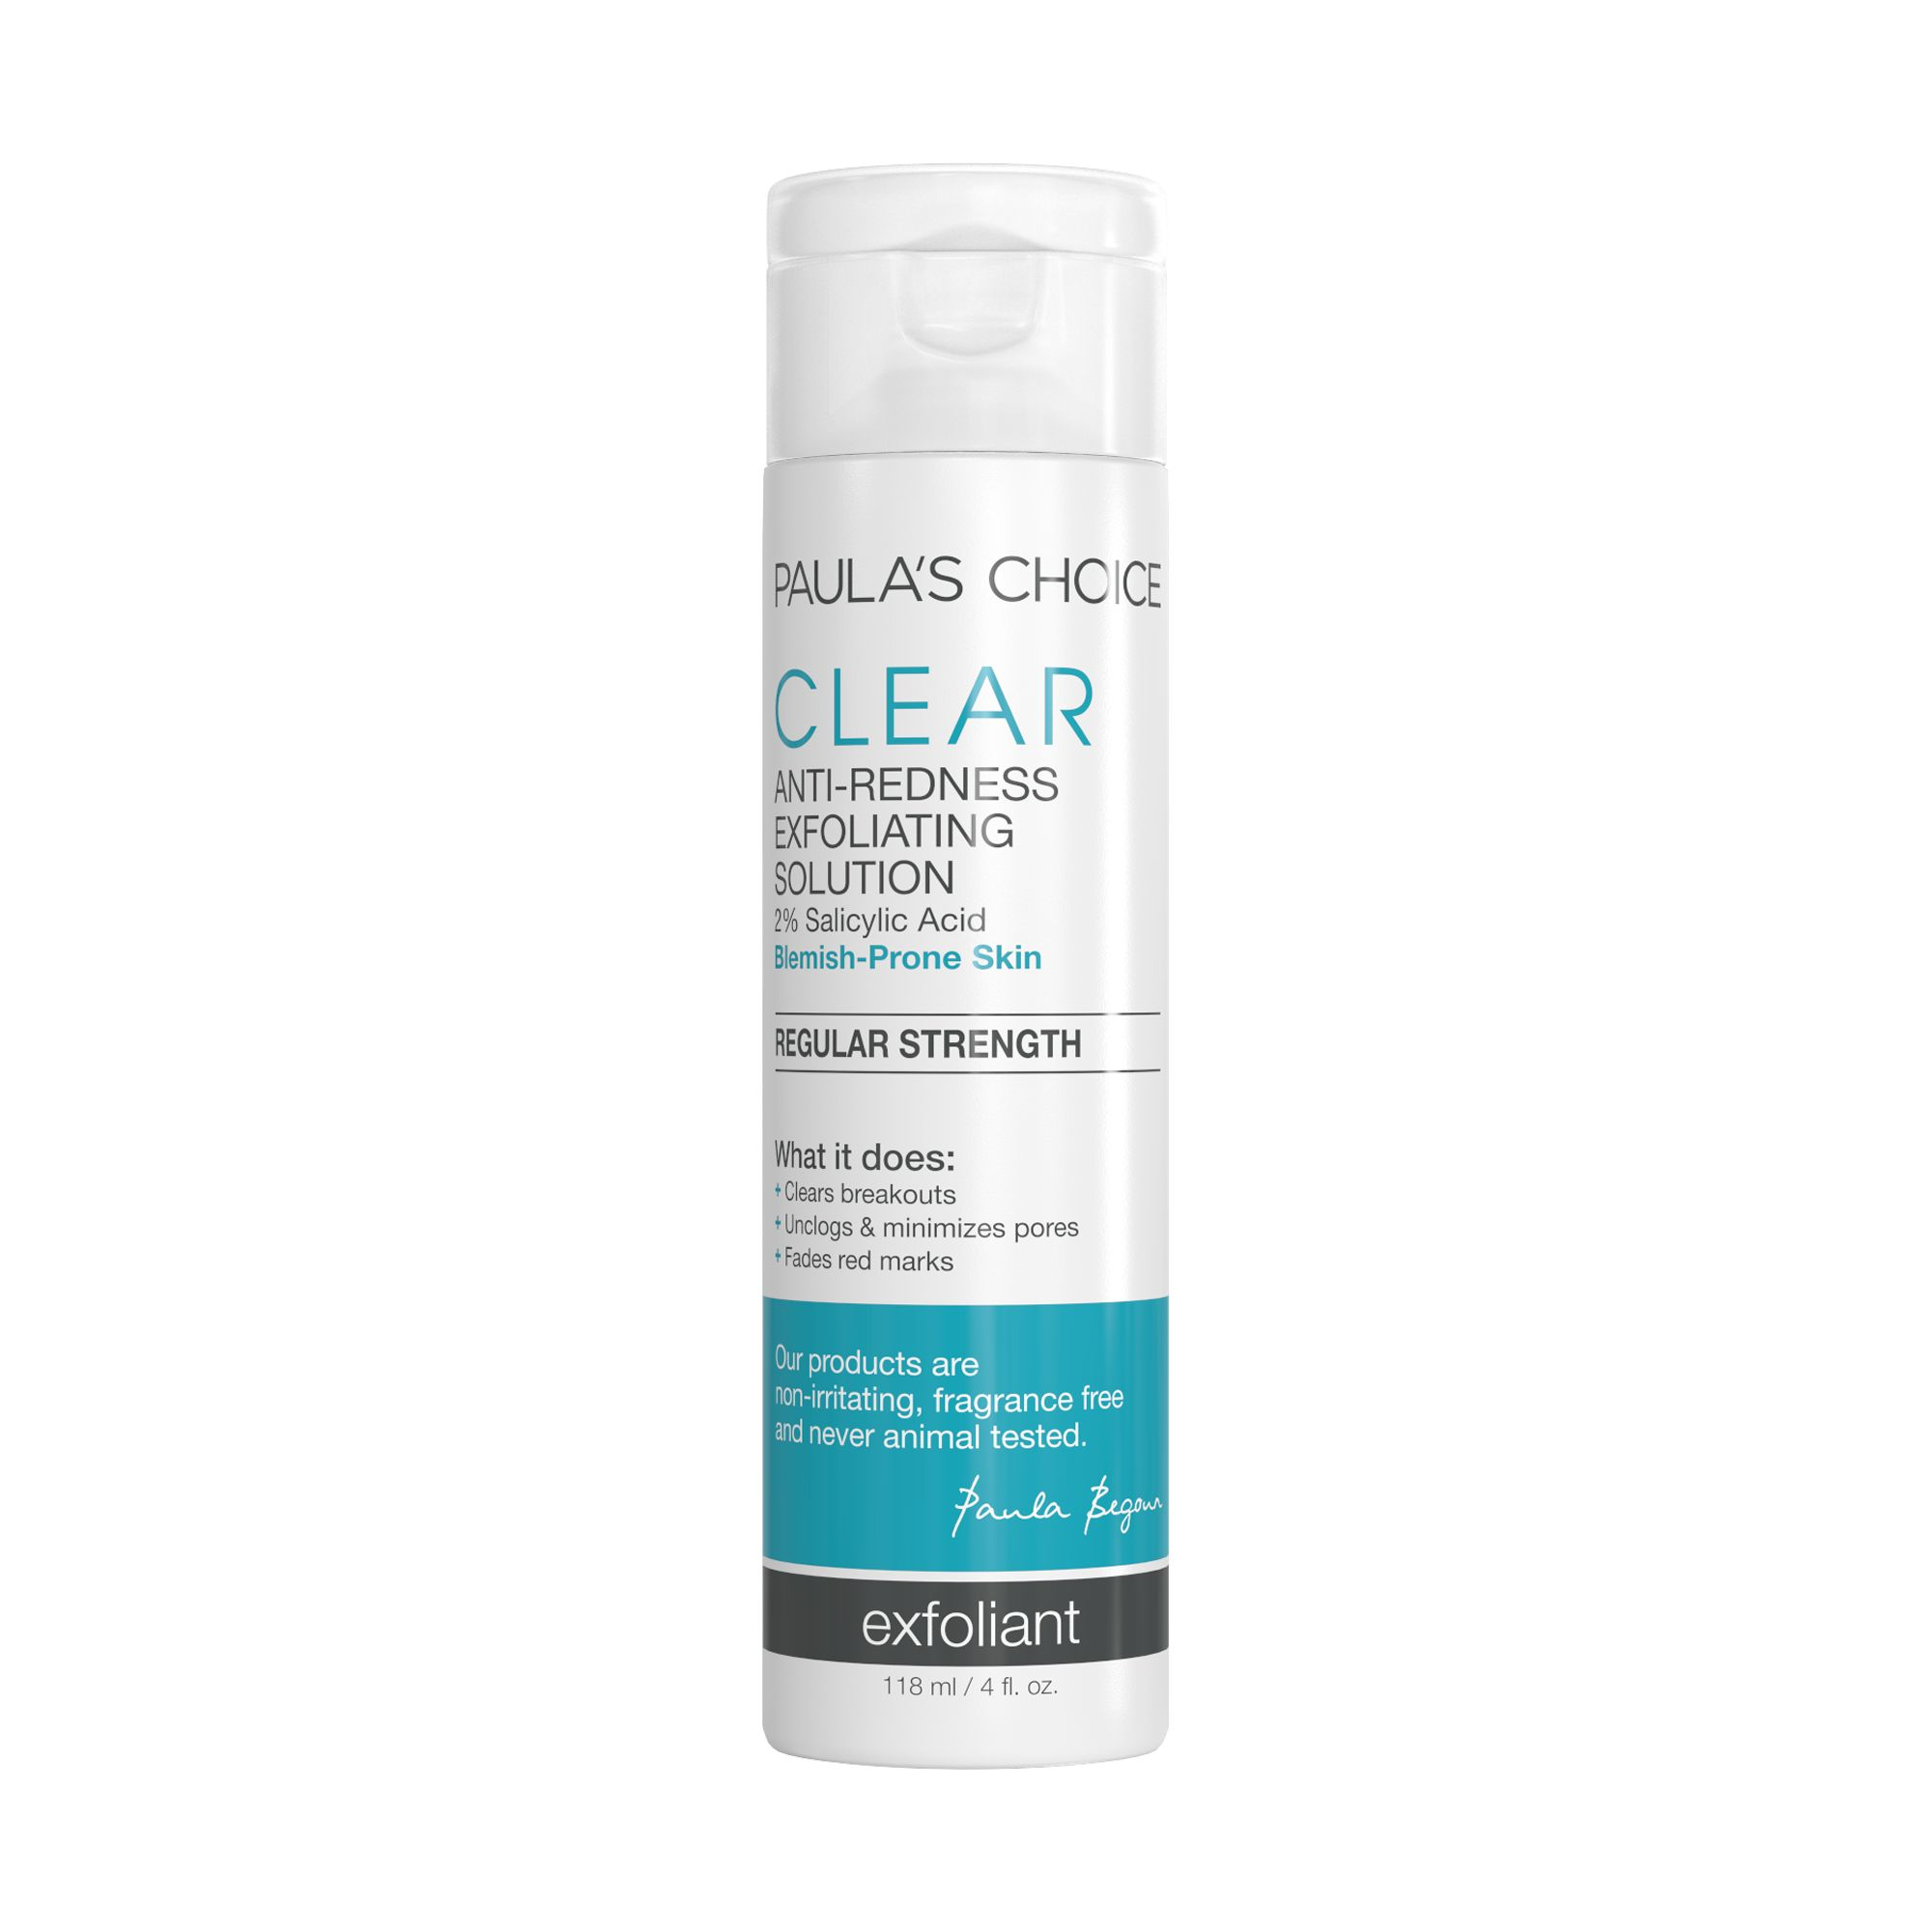 [ลด 20%] Paula's Choice : CLEAR Regular Strength Anti-Redness Exfoliating Solution With 2% Salicylic Acid 118ml